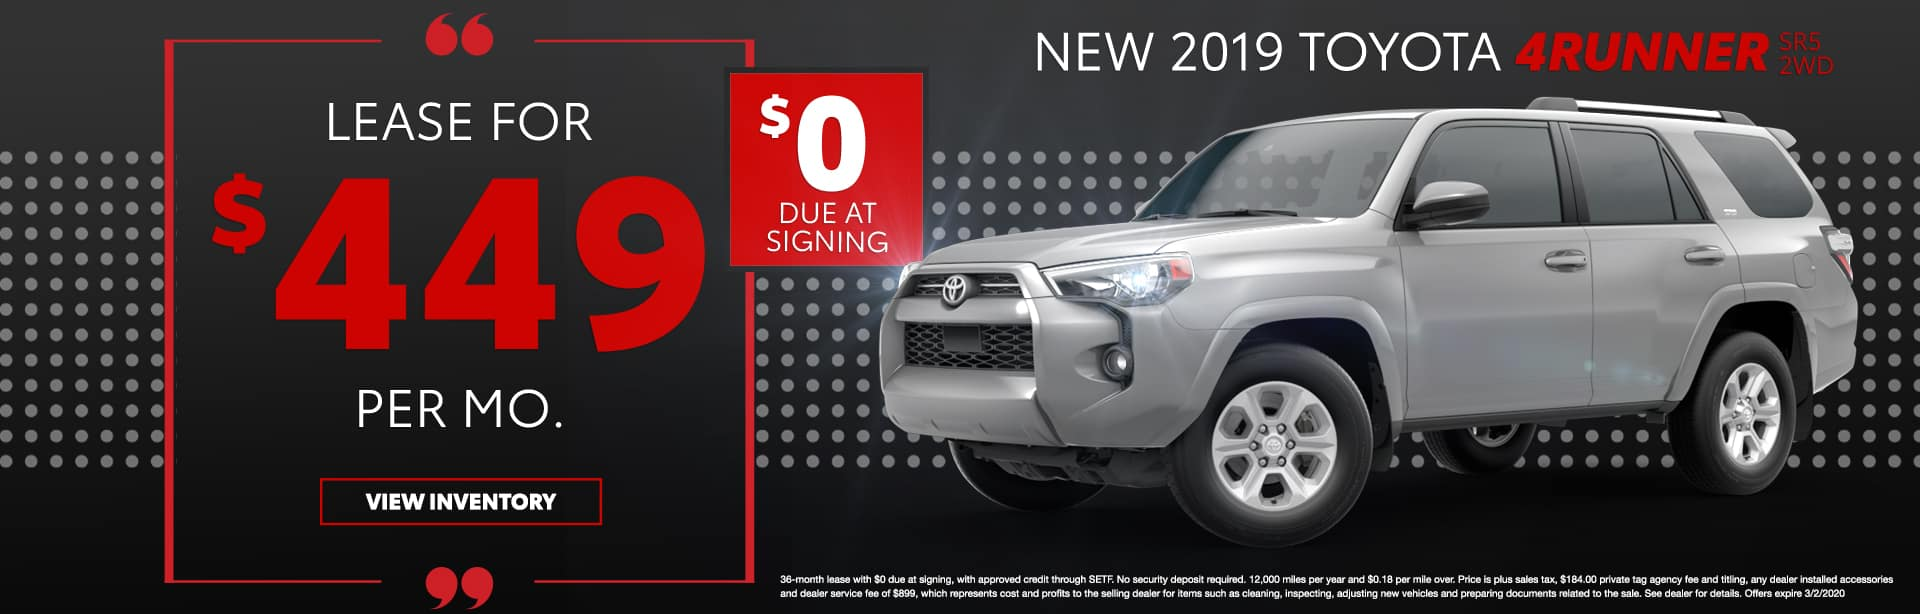 New 2019 Toyota 4Runner SR5 2WD   Lease For $449 Per Mo.   $0 Due At Signing